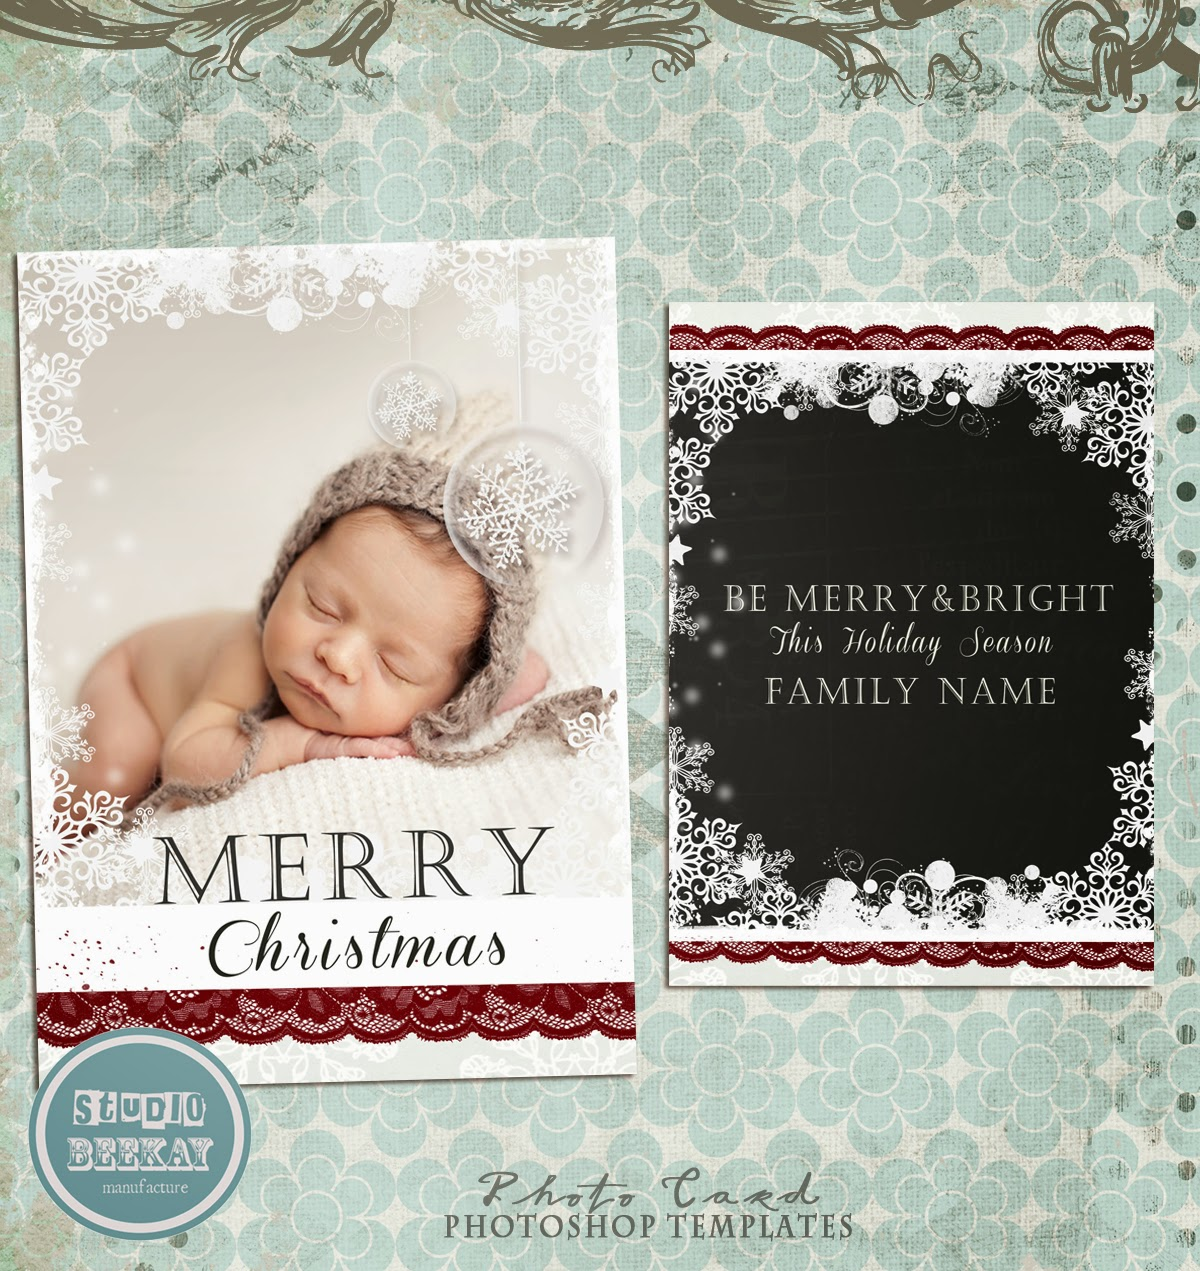 photoshop templates for pro photographers  new christmas